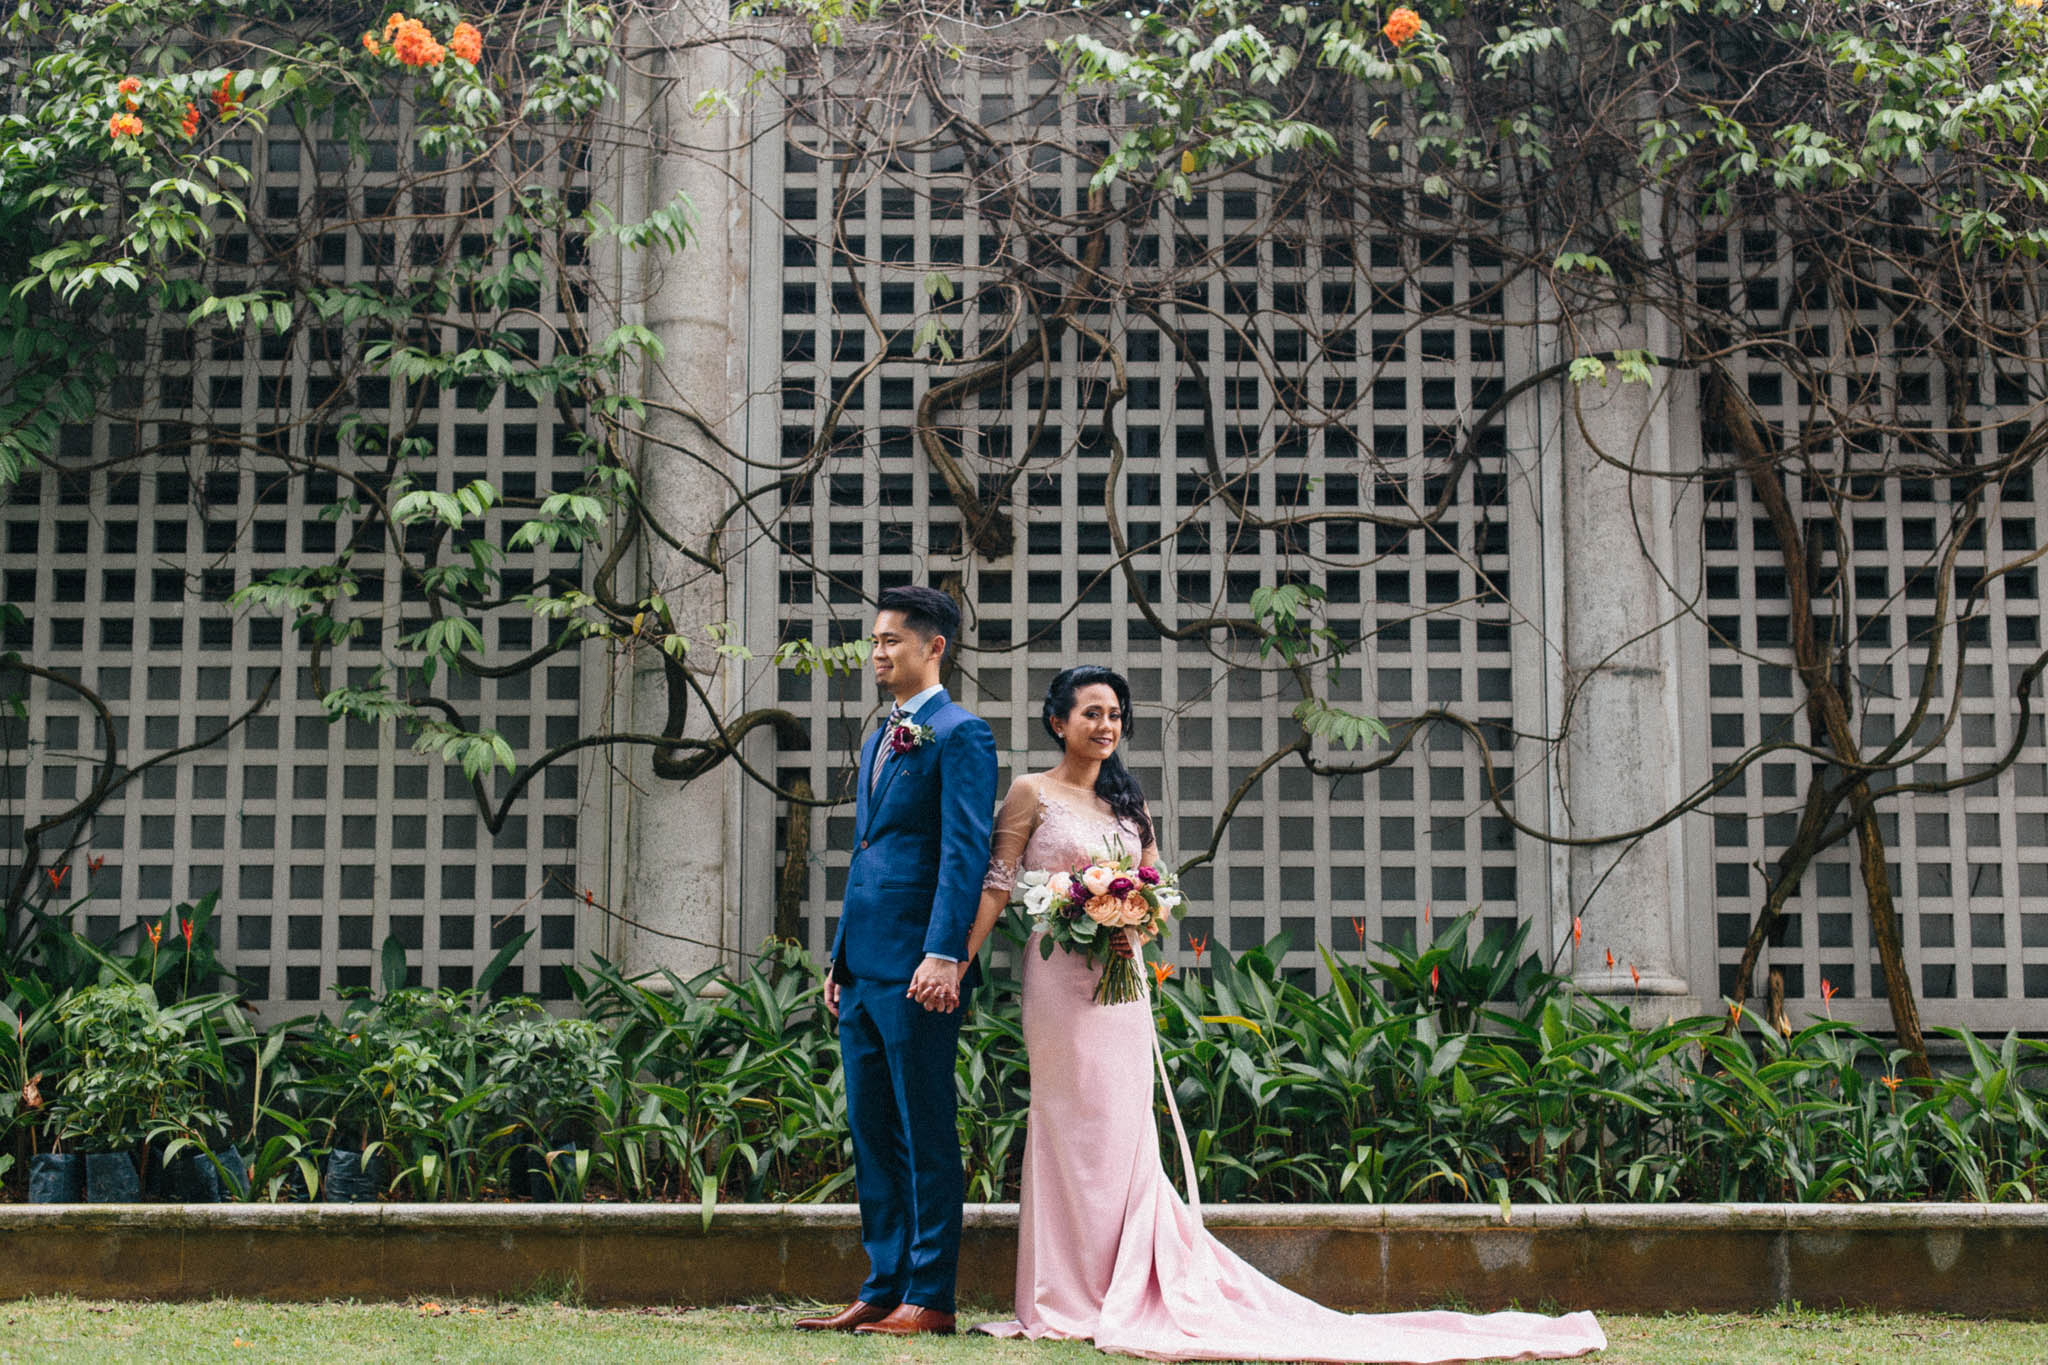 singapore-wedding-photographer-wedding-hafiana-teck-kuan-078.jpg